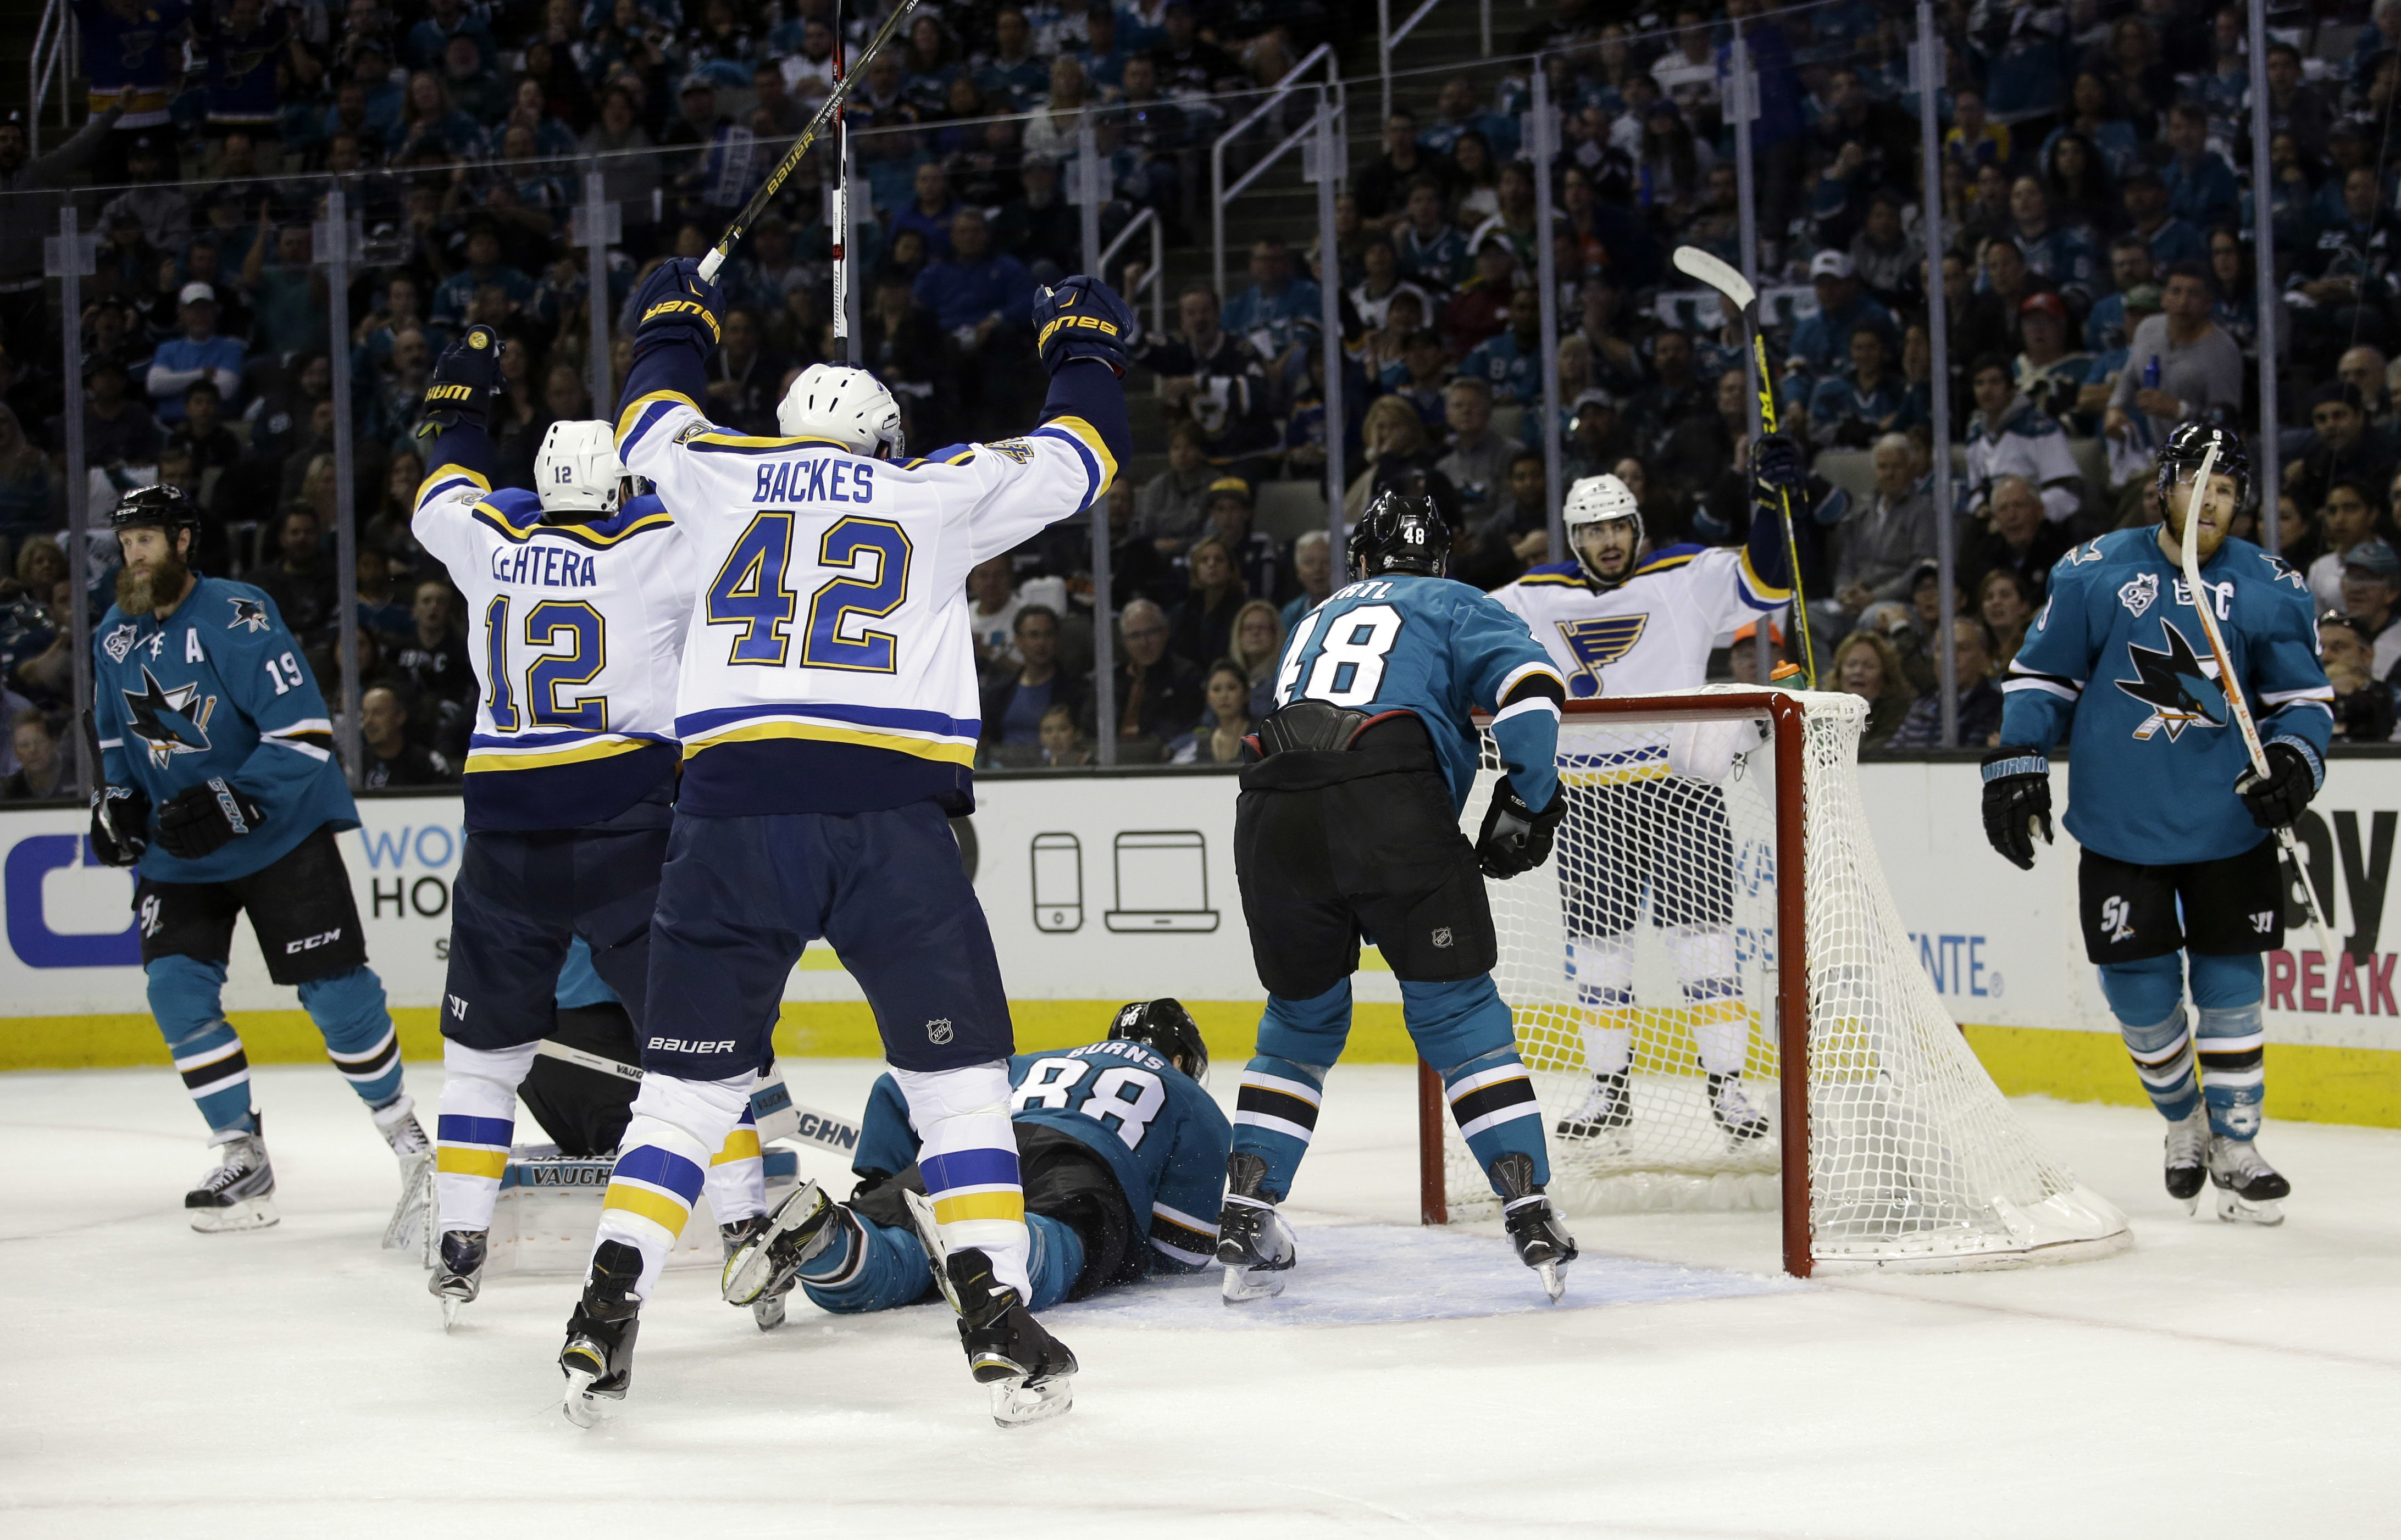 St. Louis Blues' Jori Lehtera (12) celebrates after scoring against the San Jose Sharks during the first period in Game 4 of the NHL hockey Stanley Cup Western Conference finals Saturday, May 21, 2016, in San Jose, Calif. (AP Photo/Marcio Jose Sanchez)